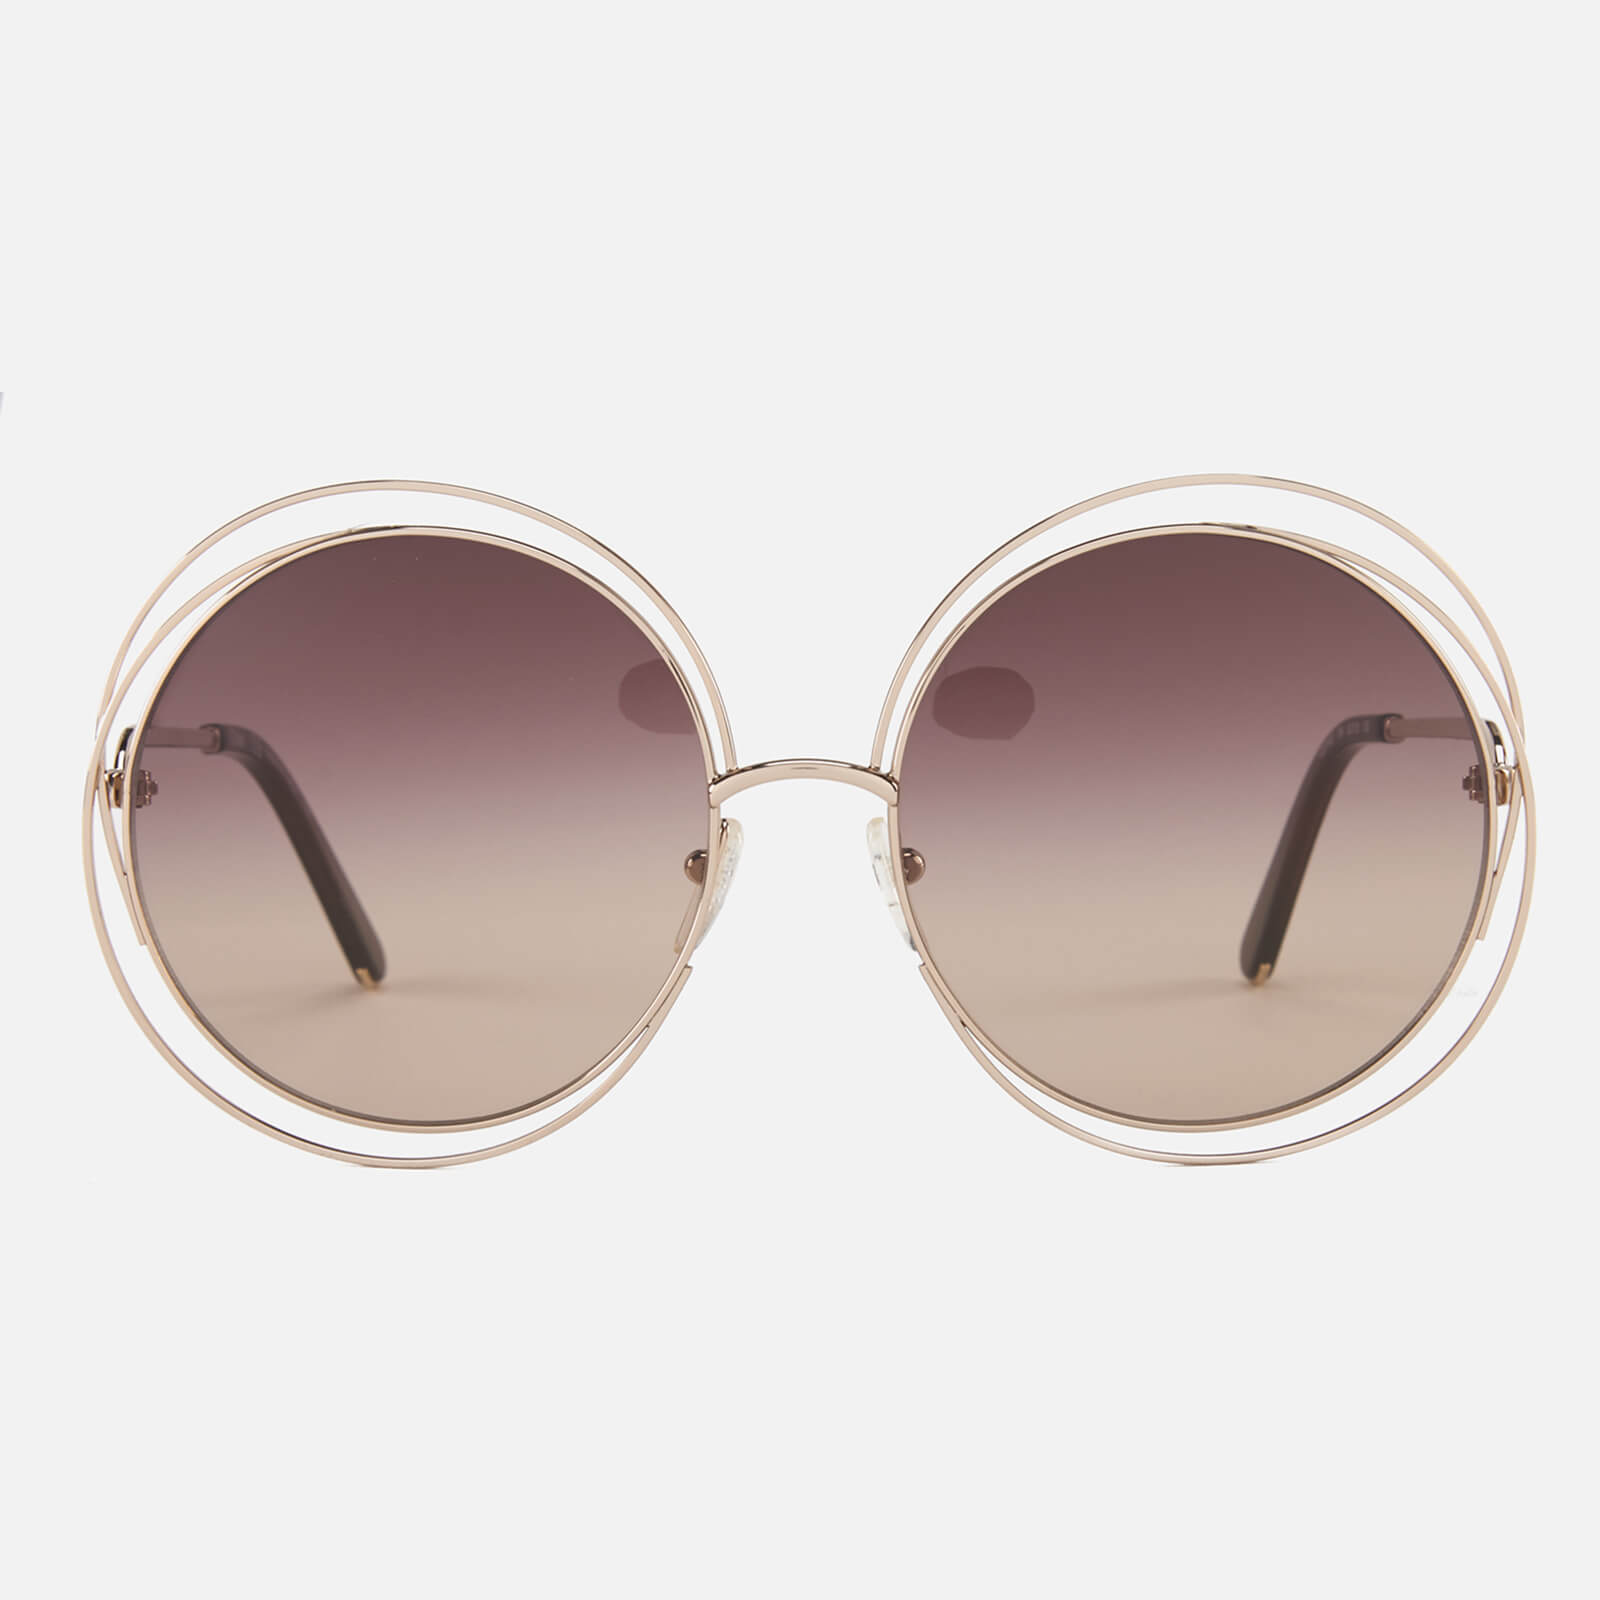 5db1970e42bc Chloe Women s Carlina Sunglasses - Rose Gold Brown - Free UK Delivery over  £50